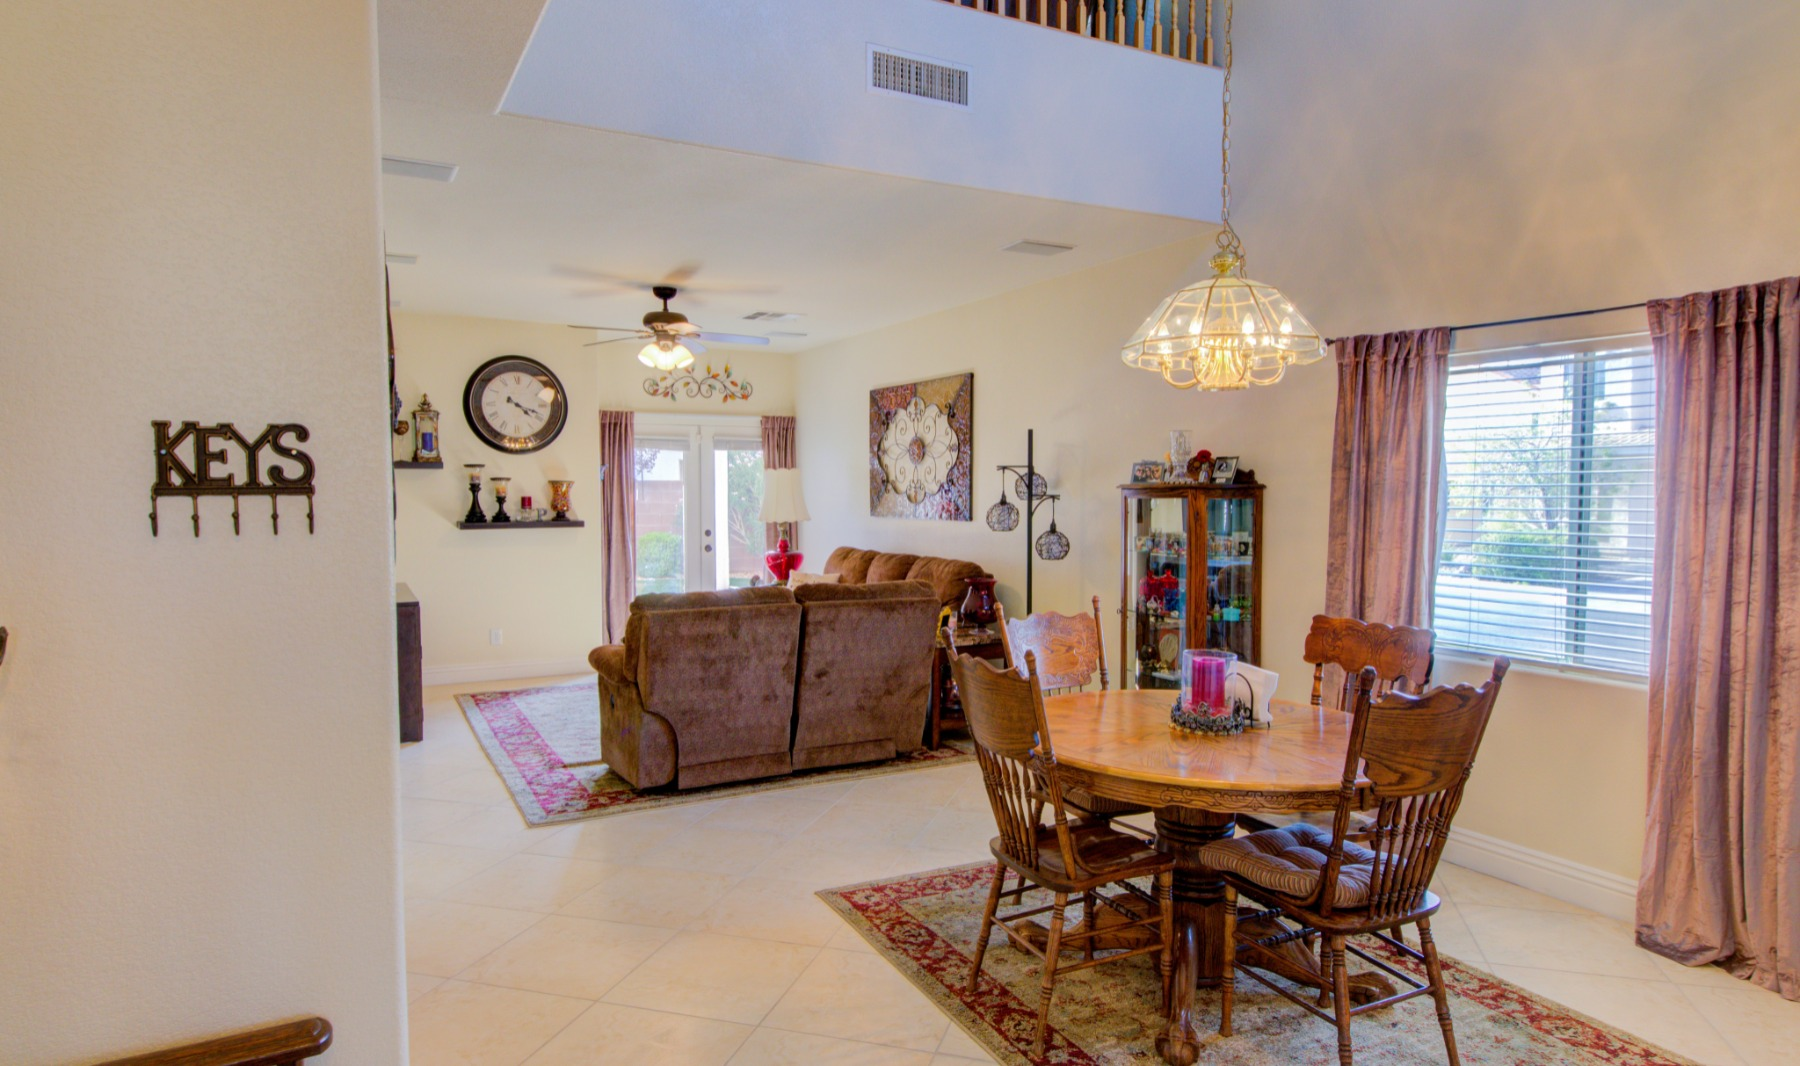 1167 Butternut Ranch | Image Title